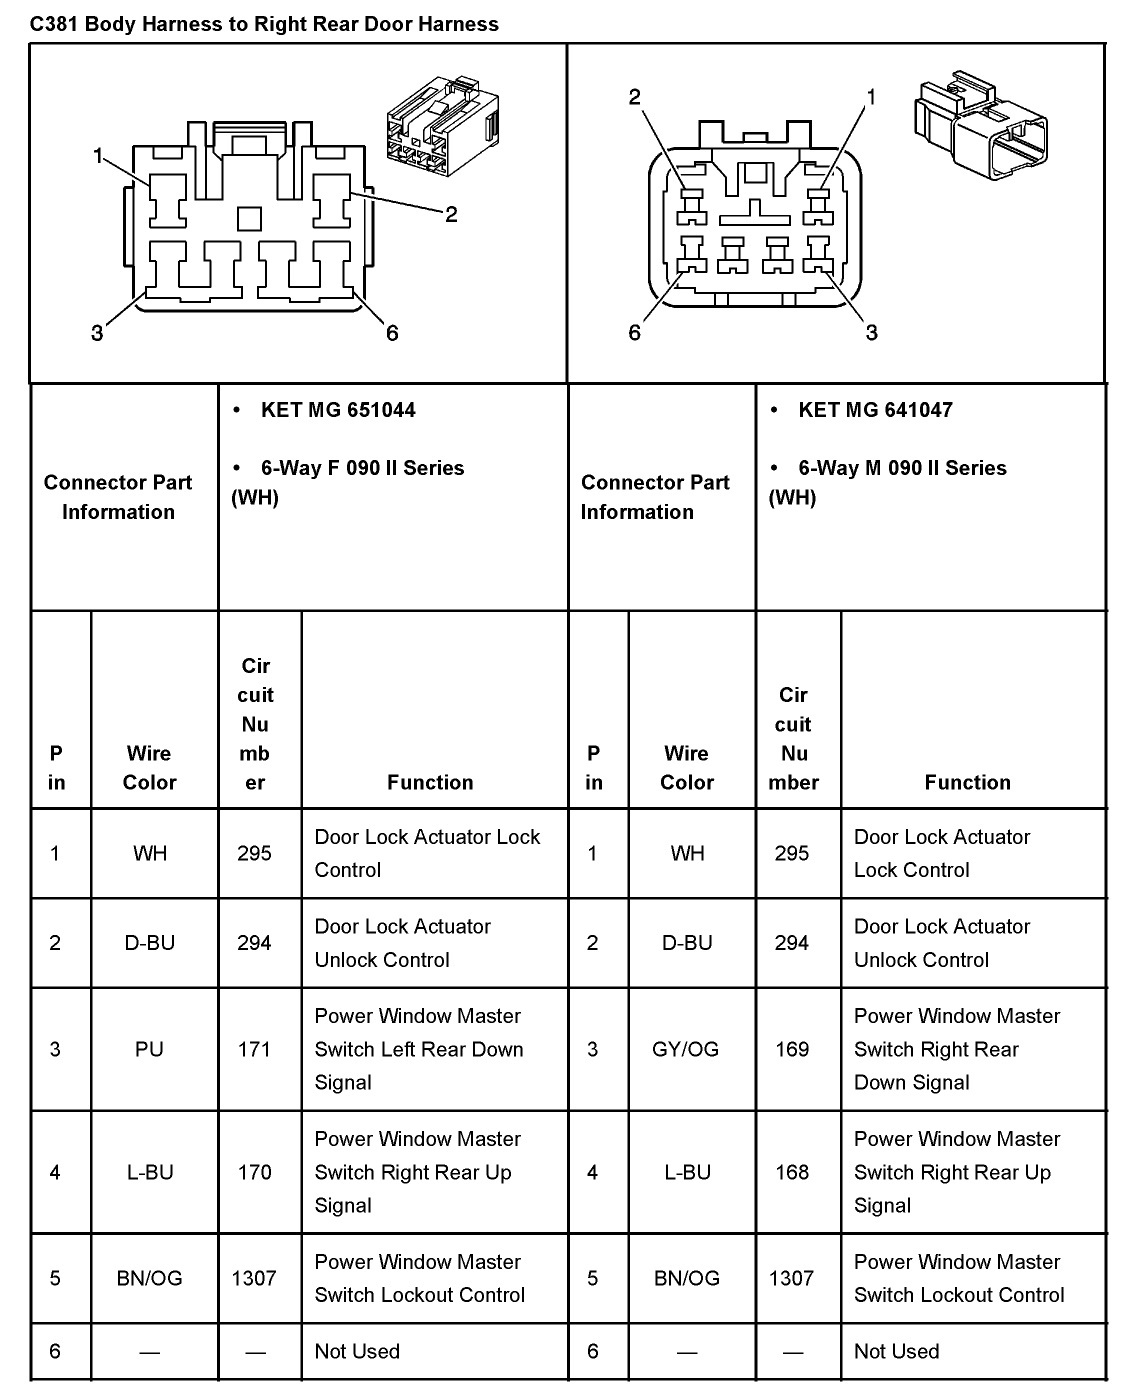 wiring diagram for chevy aveo detailed schematics diagram rh lelandlutheran com wiring diagram chevrolet aveo 2007 wiring diagram chevy aveo